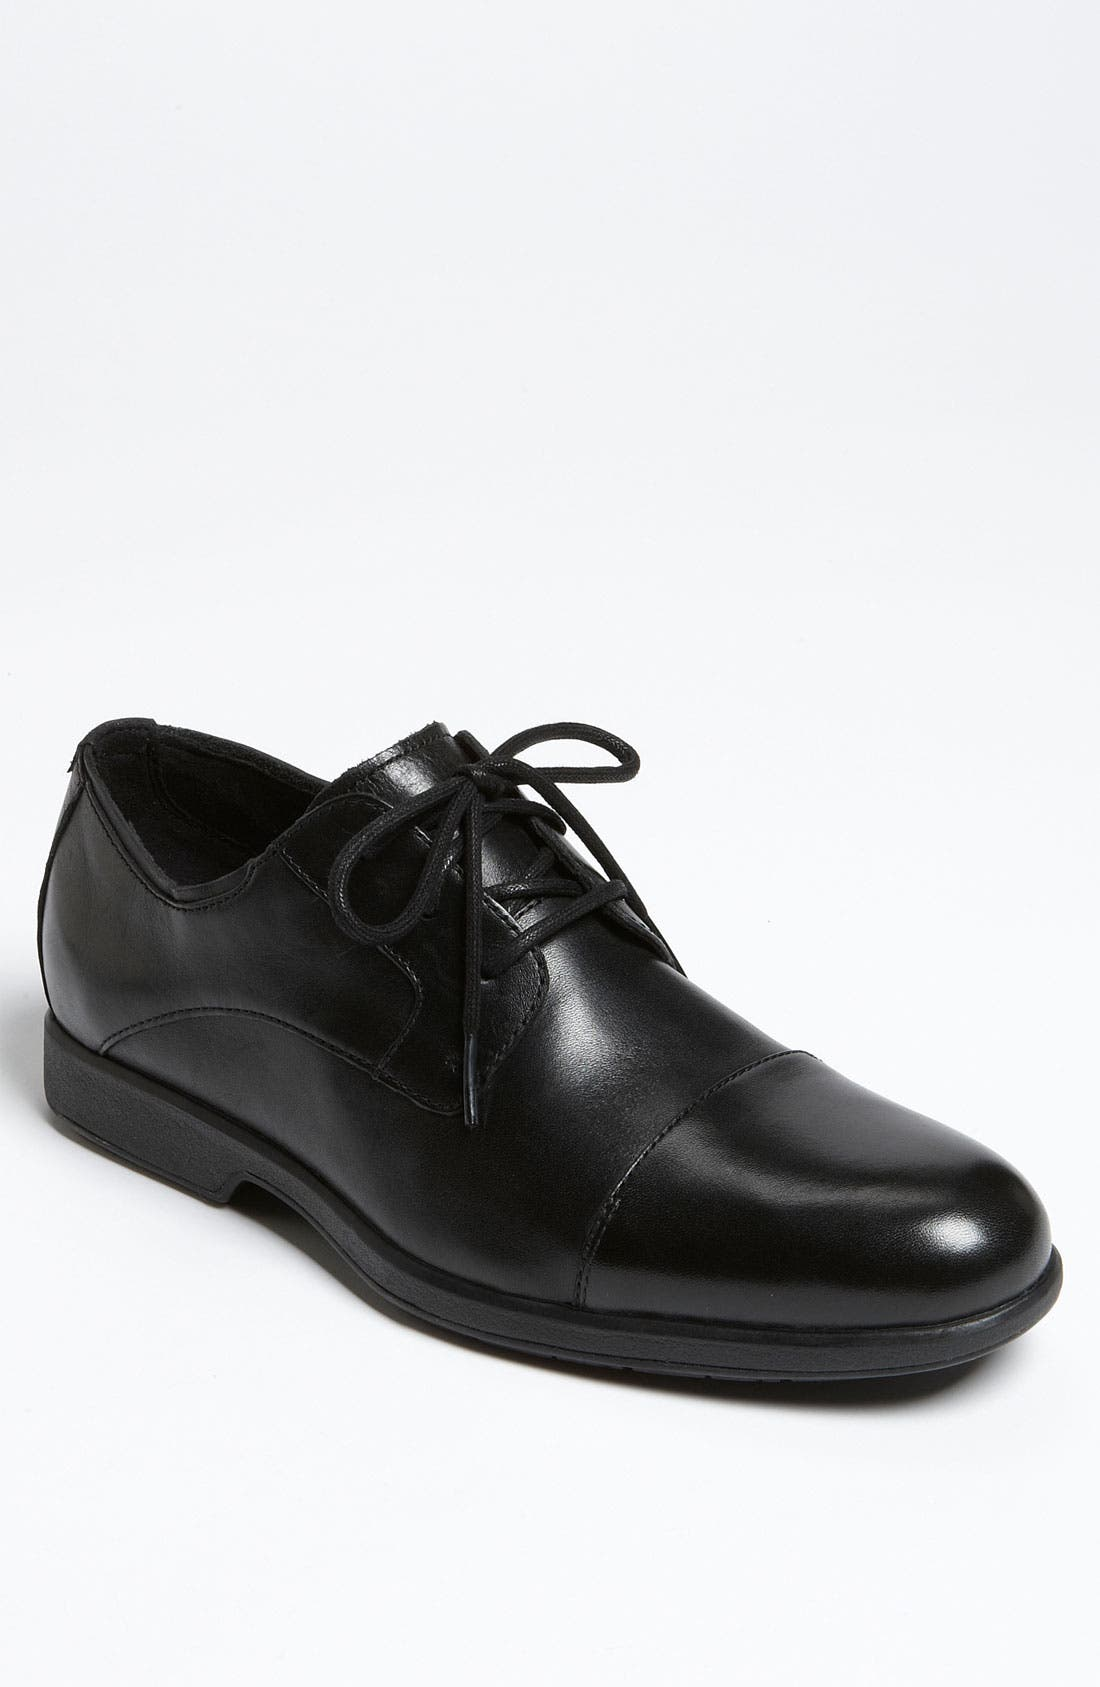 Alternate Image 1 Selected - Cole Haan 'Toledo' Oxford